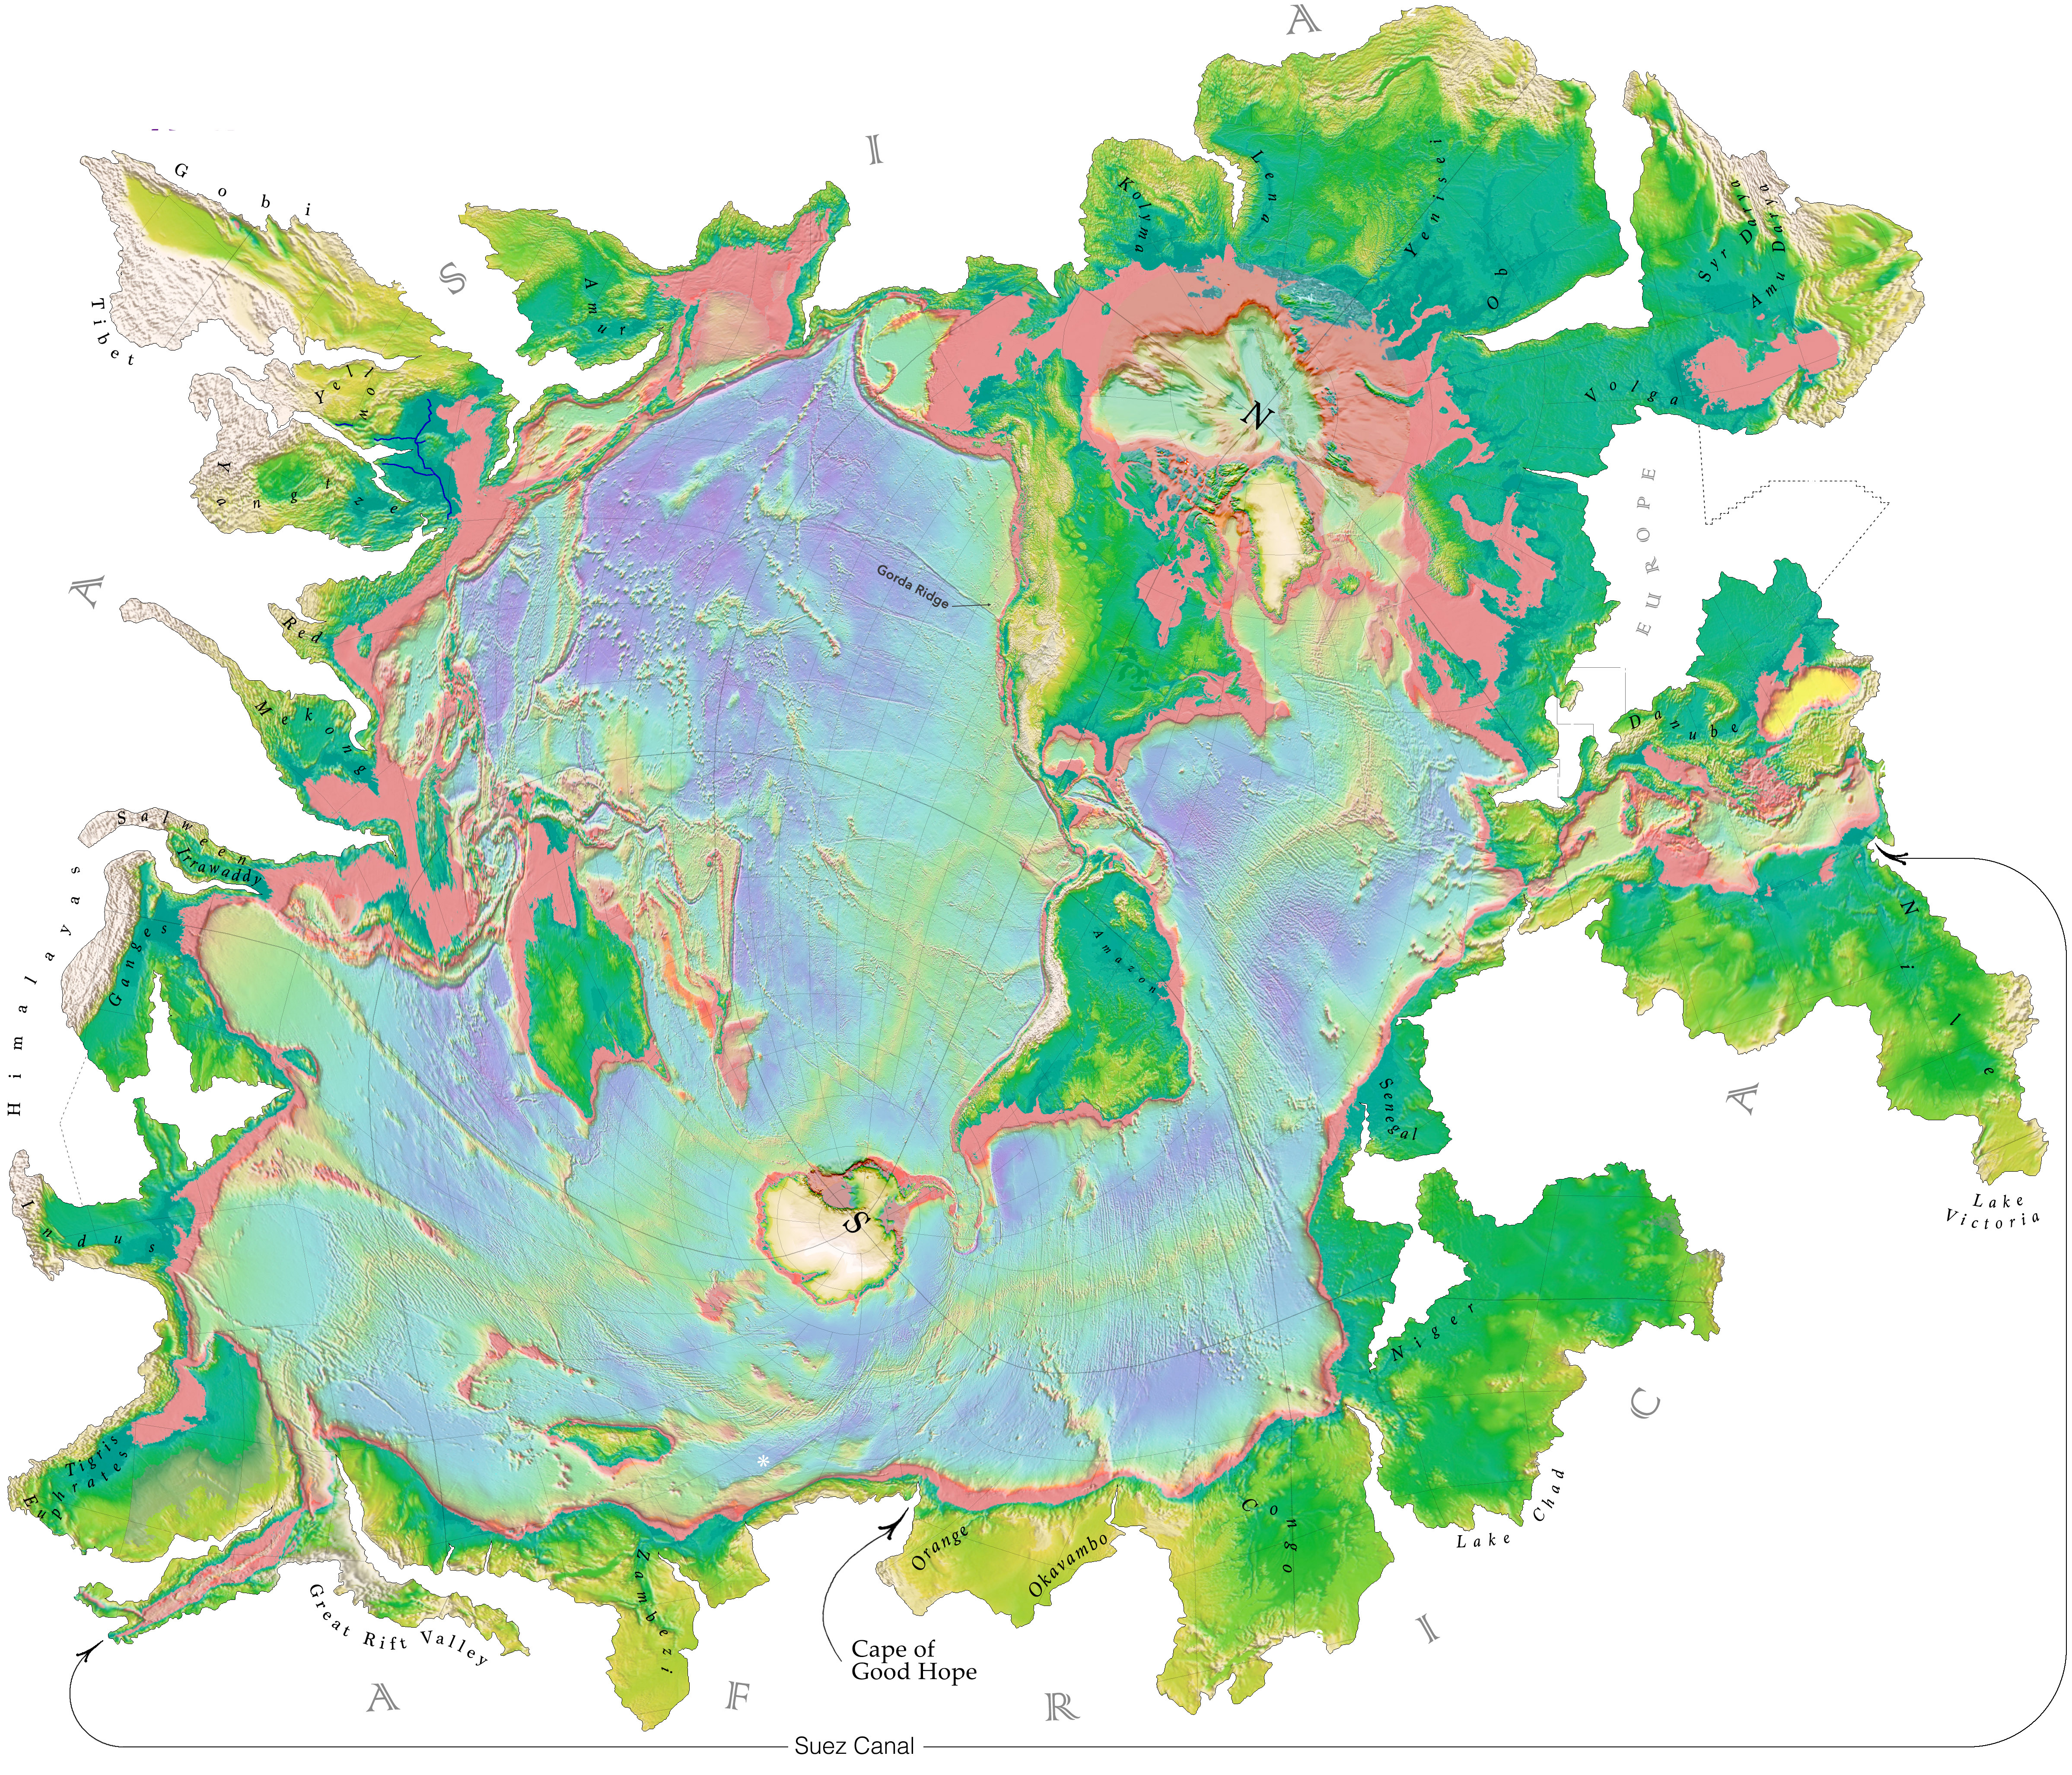 world maps with constant-scale natural boundaries | P ... on scale map of paris, scale map of california, scale map of egypt, scale map of europe, scale map of alaska, scale map of germany, scale map of africa, scale map of united states, scale map of scotland, scale map of new york city, scale map of israel, scale map of thailand, scale map of iceland, scale map of india, scale map of pennsylvania, scale map of nigeria, scale map of antarctica, scale map of italy, scale map of hawaii, scale map of ethiopia,